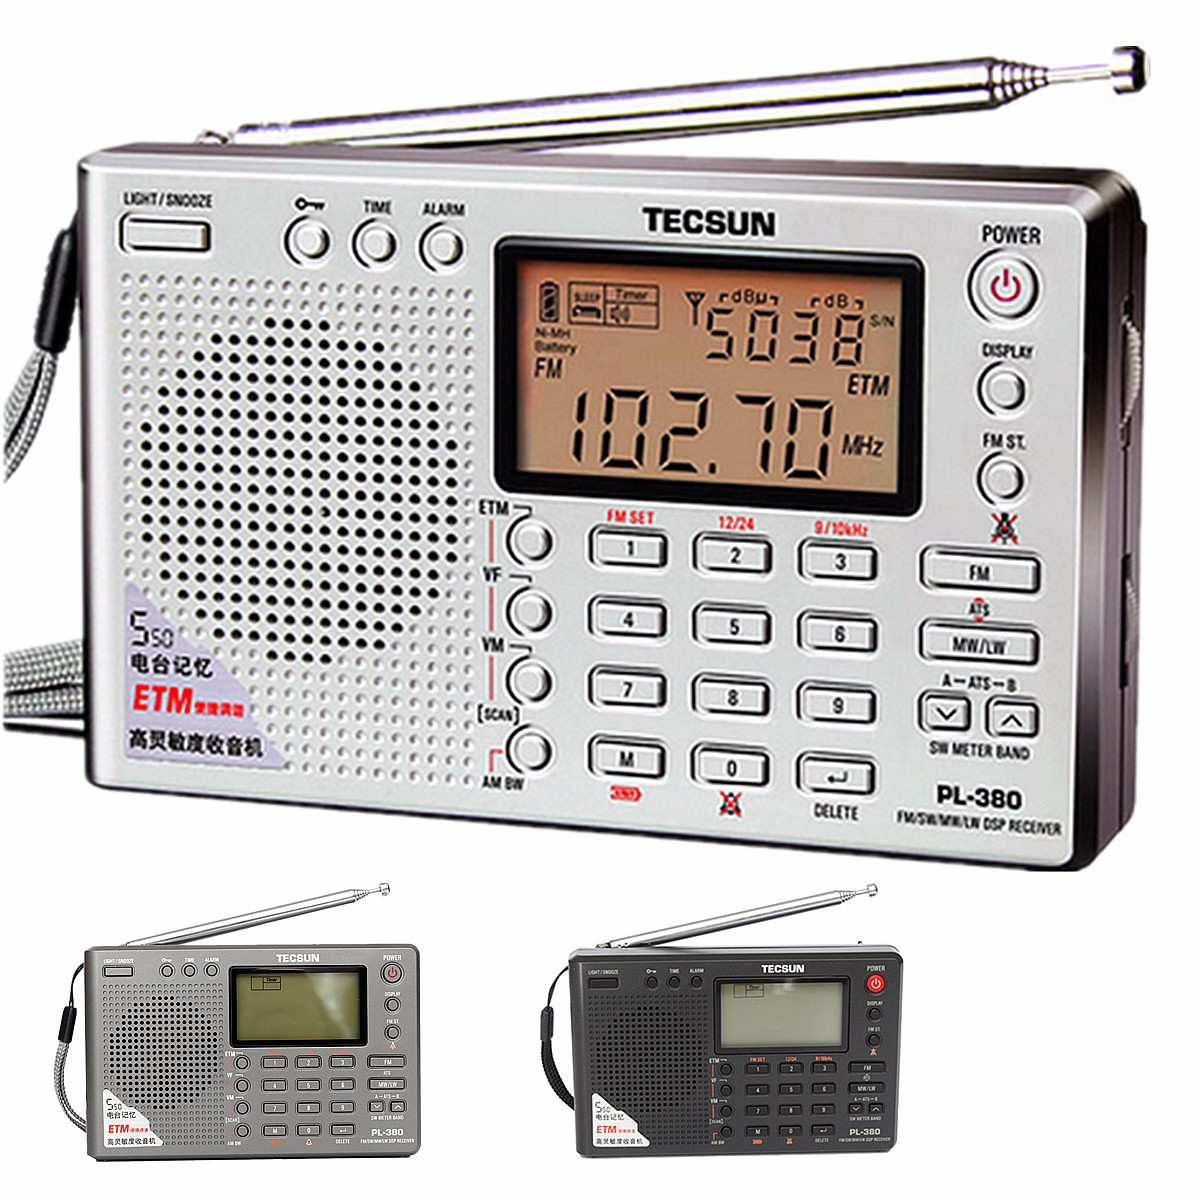 TECSUN PL-380 DSP PLL FM MW SW LW Digital Stereo Radio World-Band Receiver New 7 Tuning Mode Selectable Silver Gray Black degen de1103 radio fm sw mw lw ssb digital radio receiver multiband dsp radio external antenna world band receiver y4162h